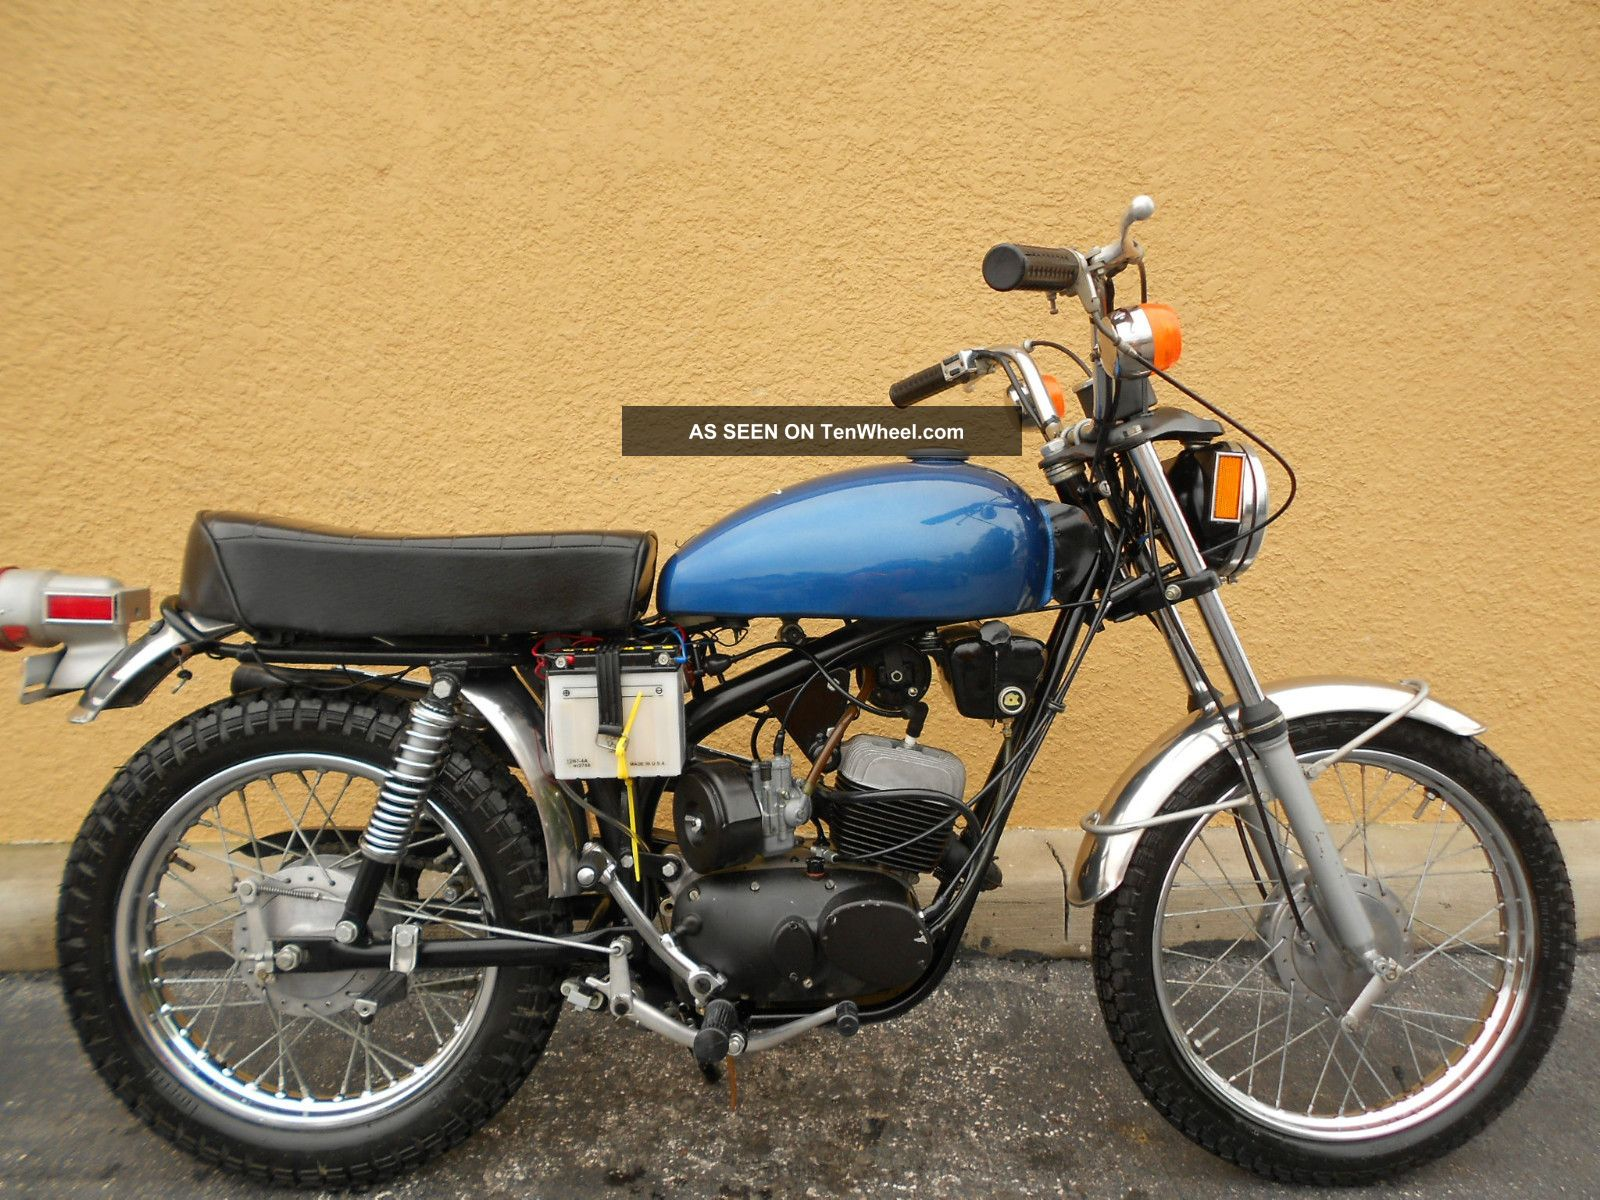 1974 Harley Davidson Aermacchi Z - 90 Motorcycle Estate Find